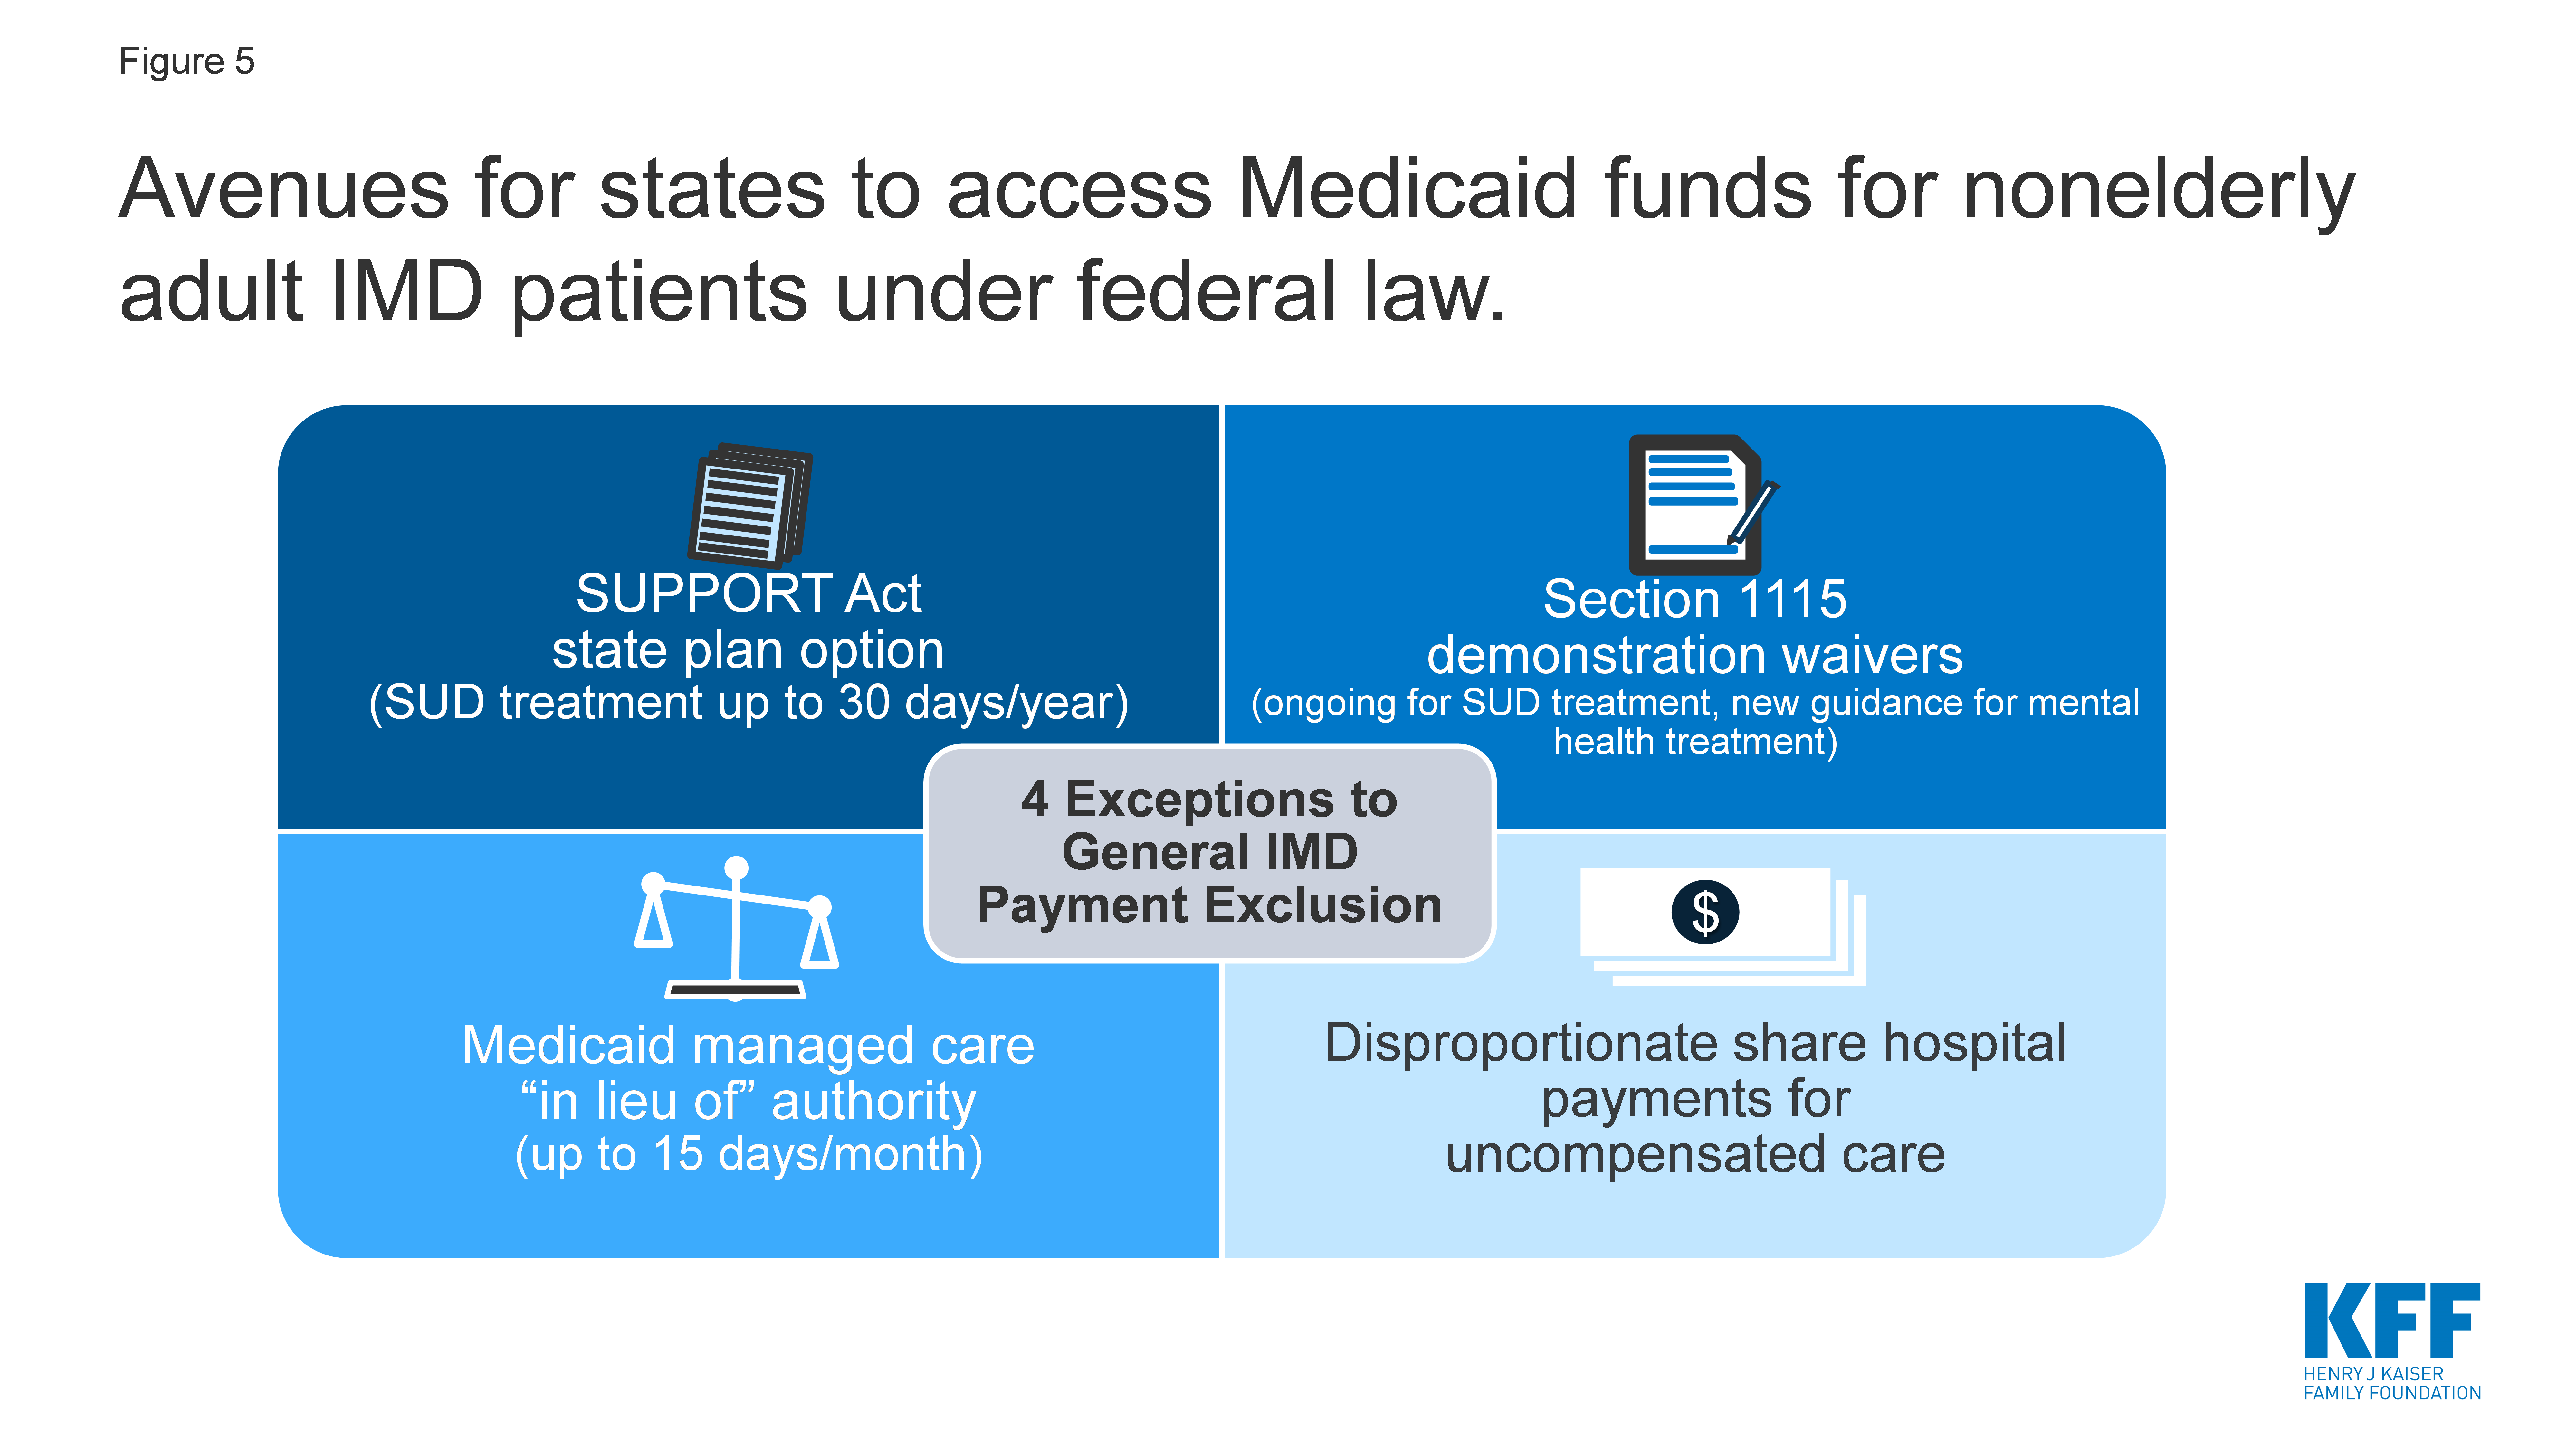 Avenue for states to access Medicaid funds for nonelderly adult IMD patients under federal law